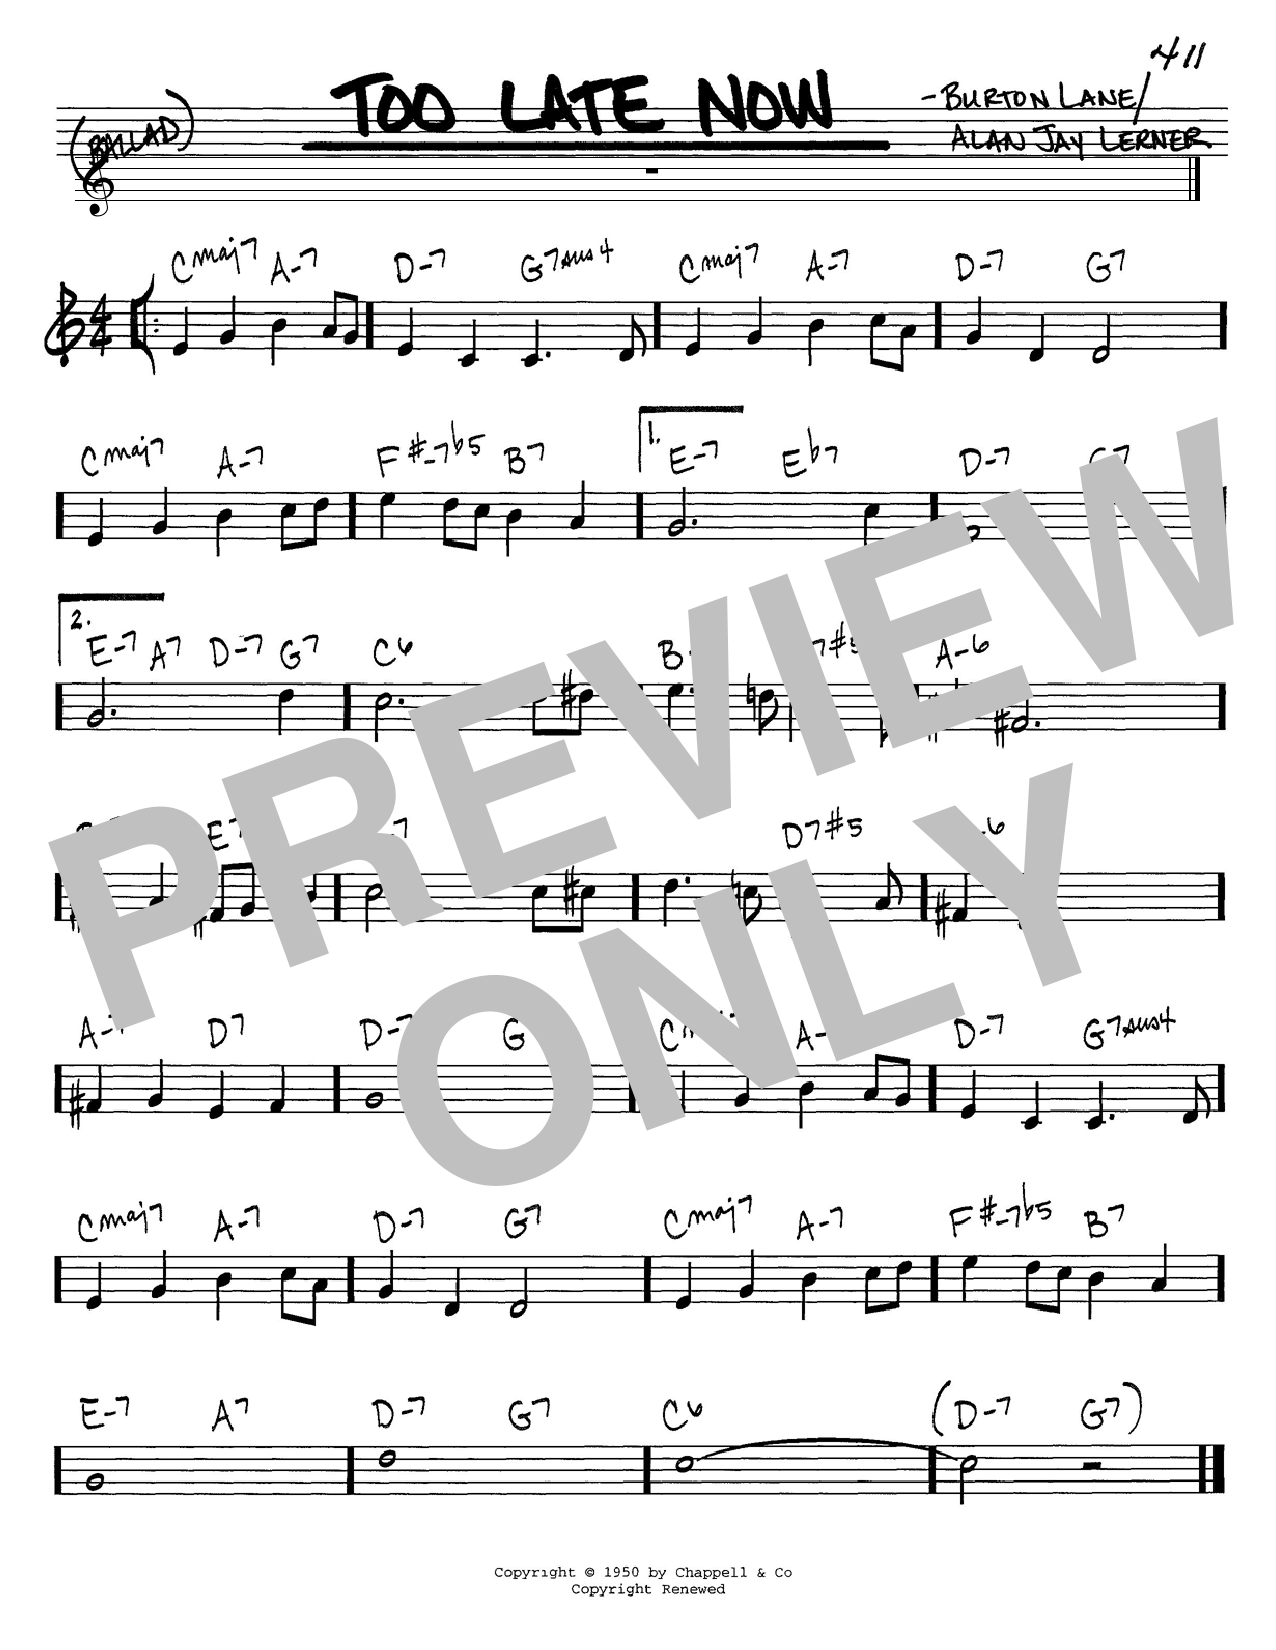 Alan Jay Lerner Too Late Now sheet music notes and chords